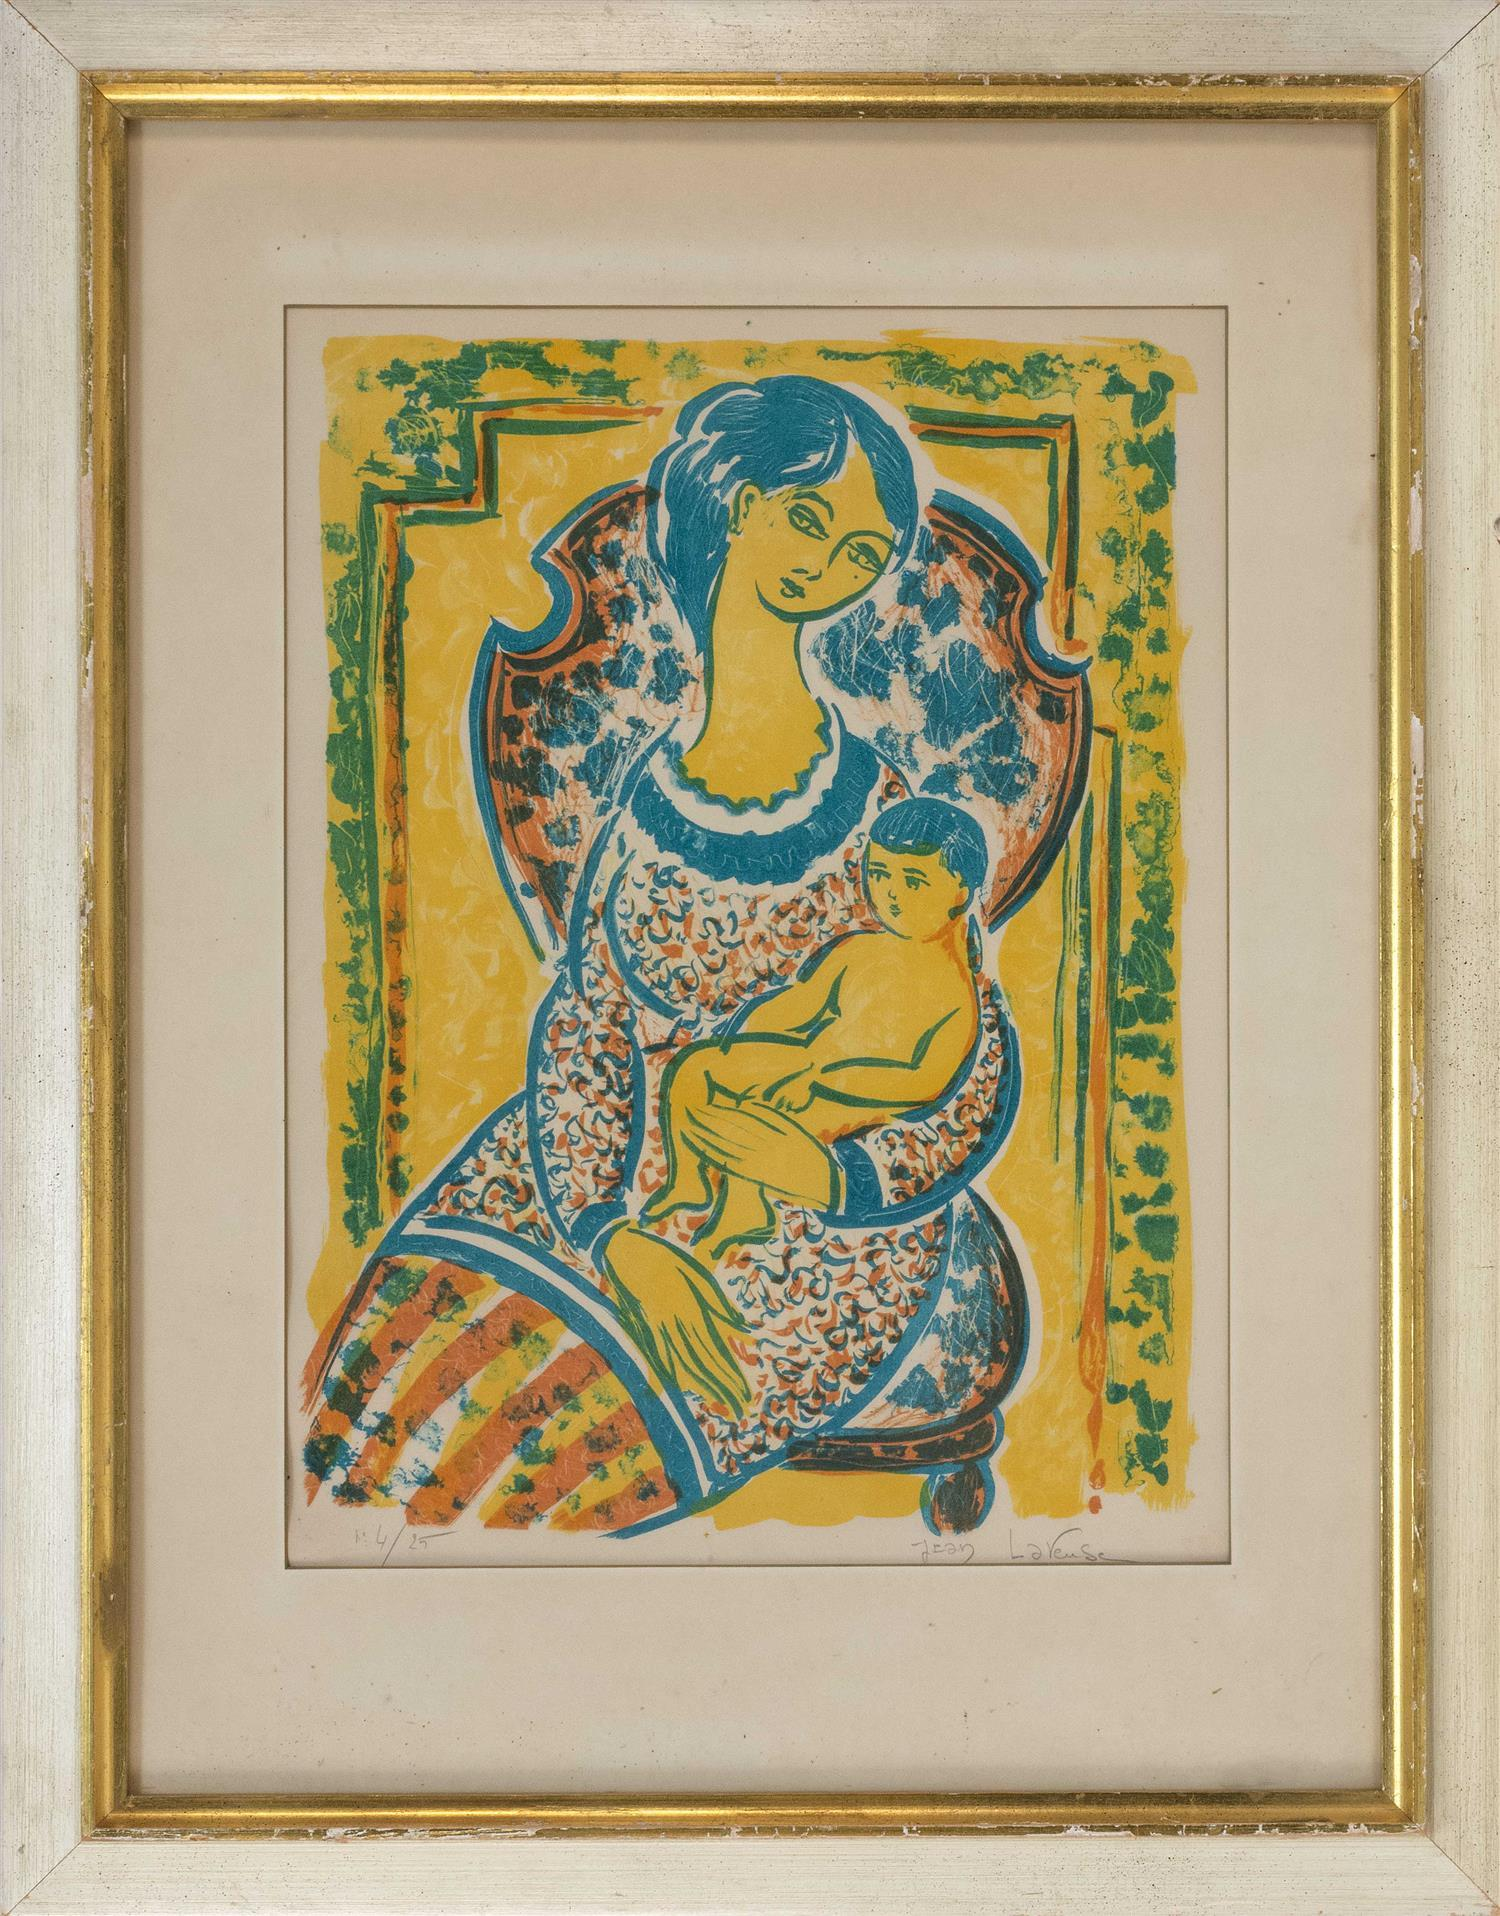 "JEAN LAREUSE, France, b. 1925, Mother and child., Lithograph on paper, 19"" x 14"" sight. Framed 29"" x 23""."